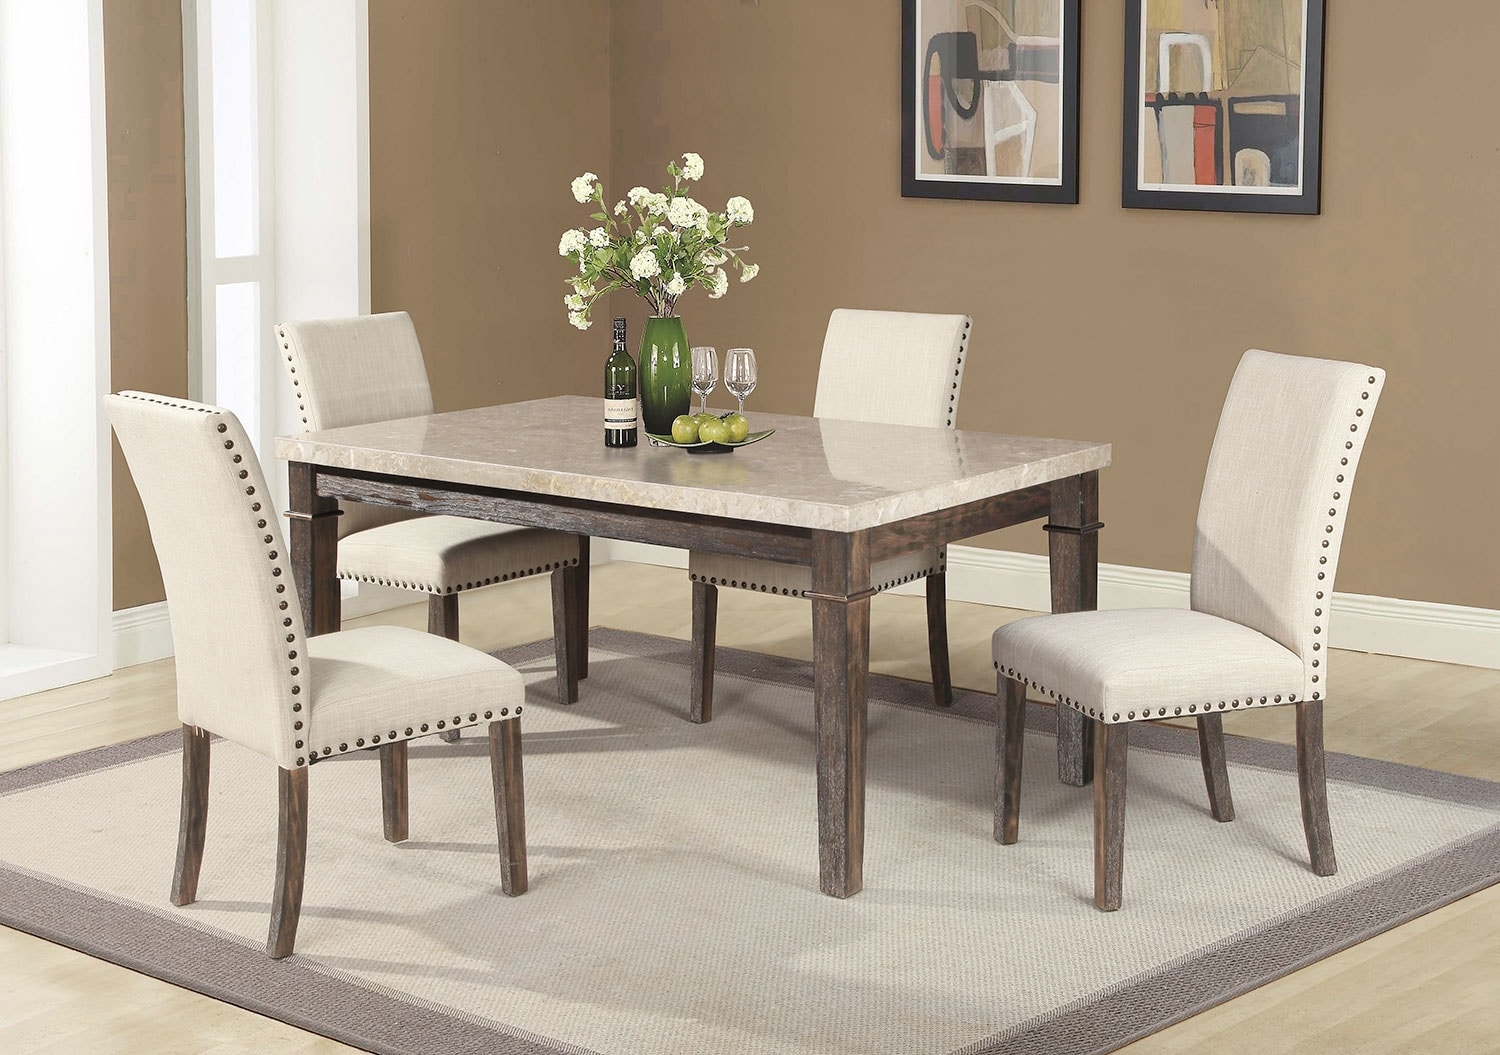 Aldo 5-Piece Dining Package